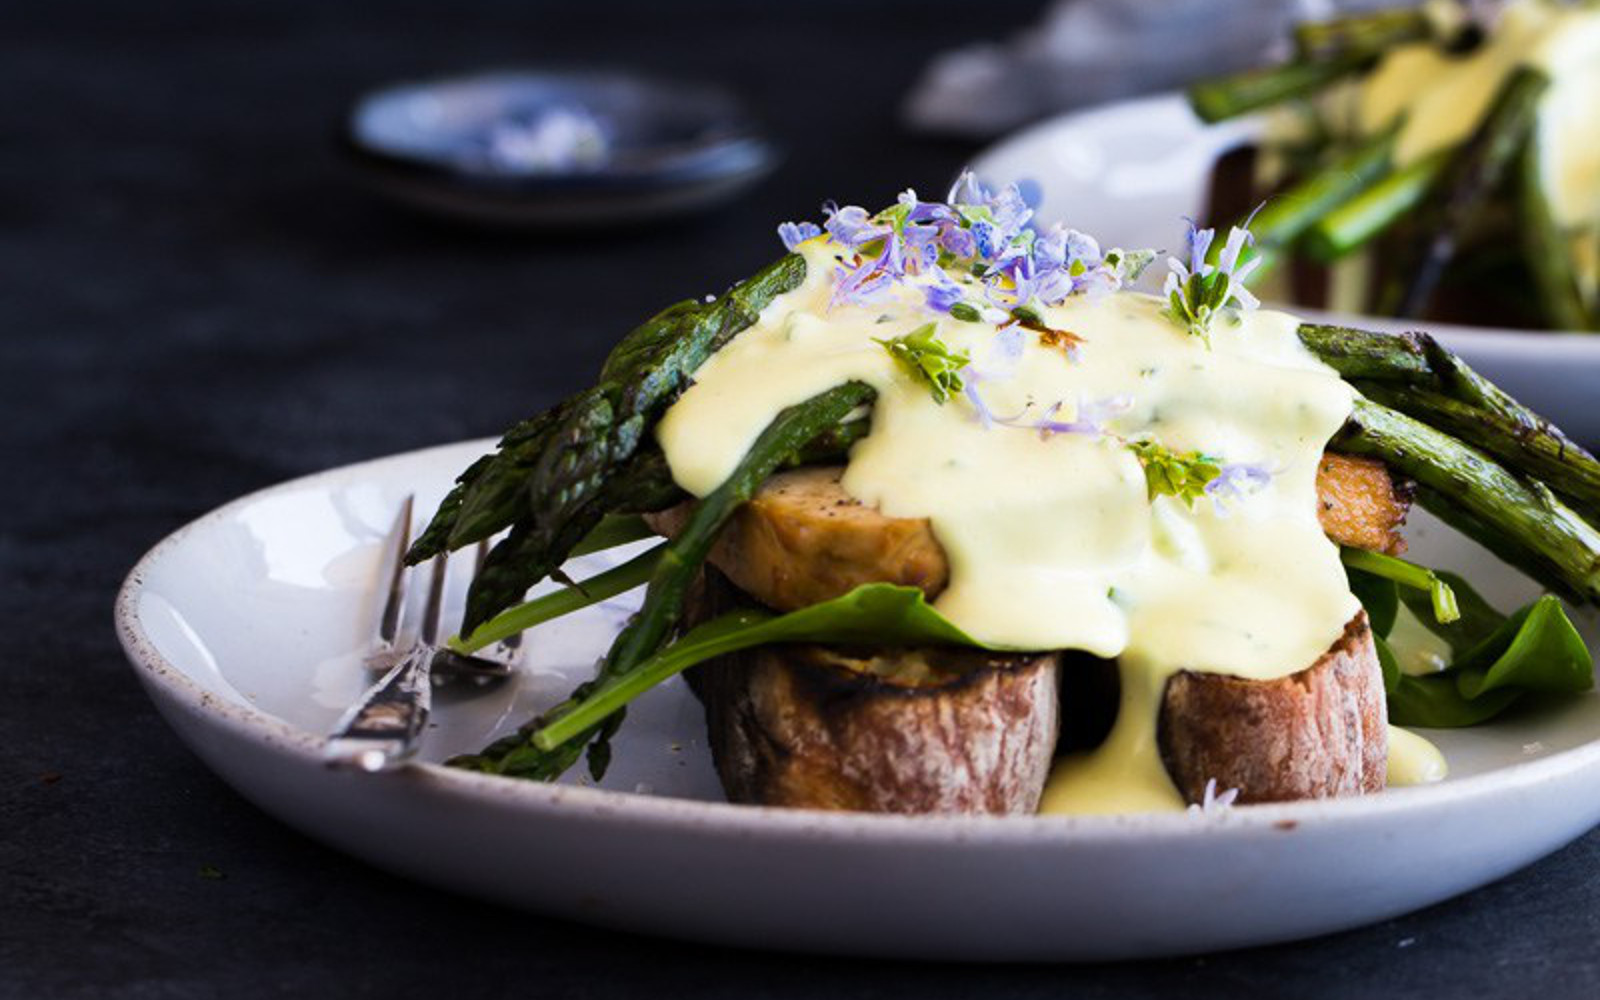 Grilled Asparagus and Smoked Tofu Benedict